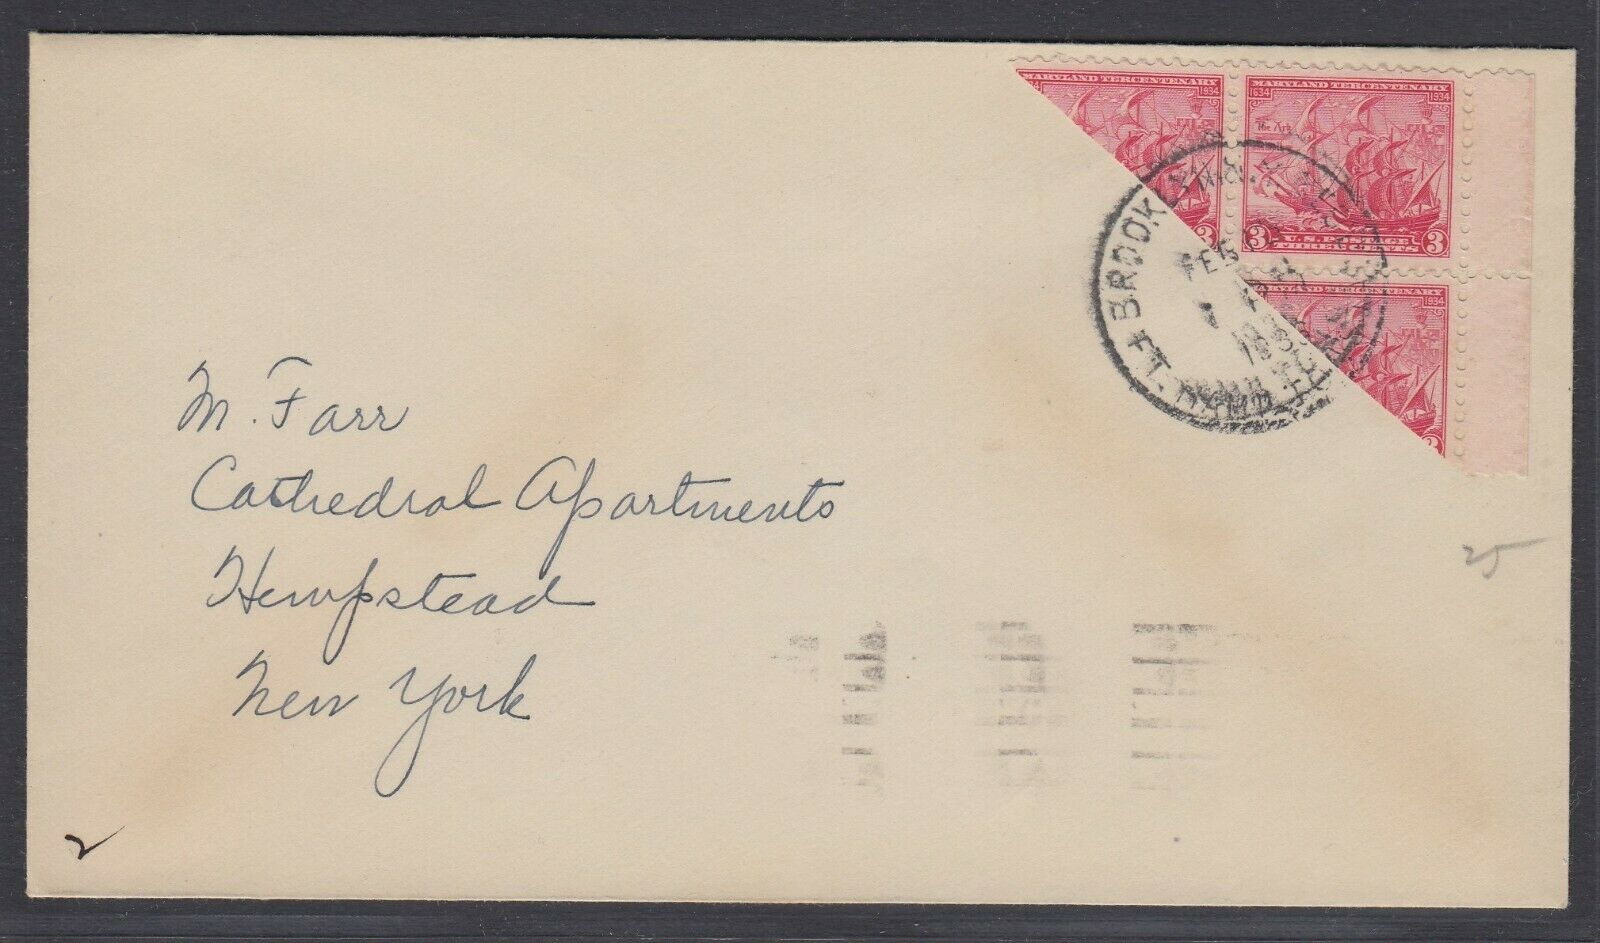 US Sc 736 - 1936 Diagonal BISECT on cover from Brooklyn NY to Hempstead NY